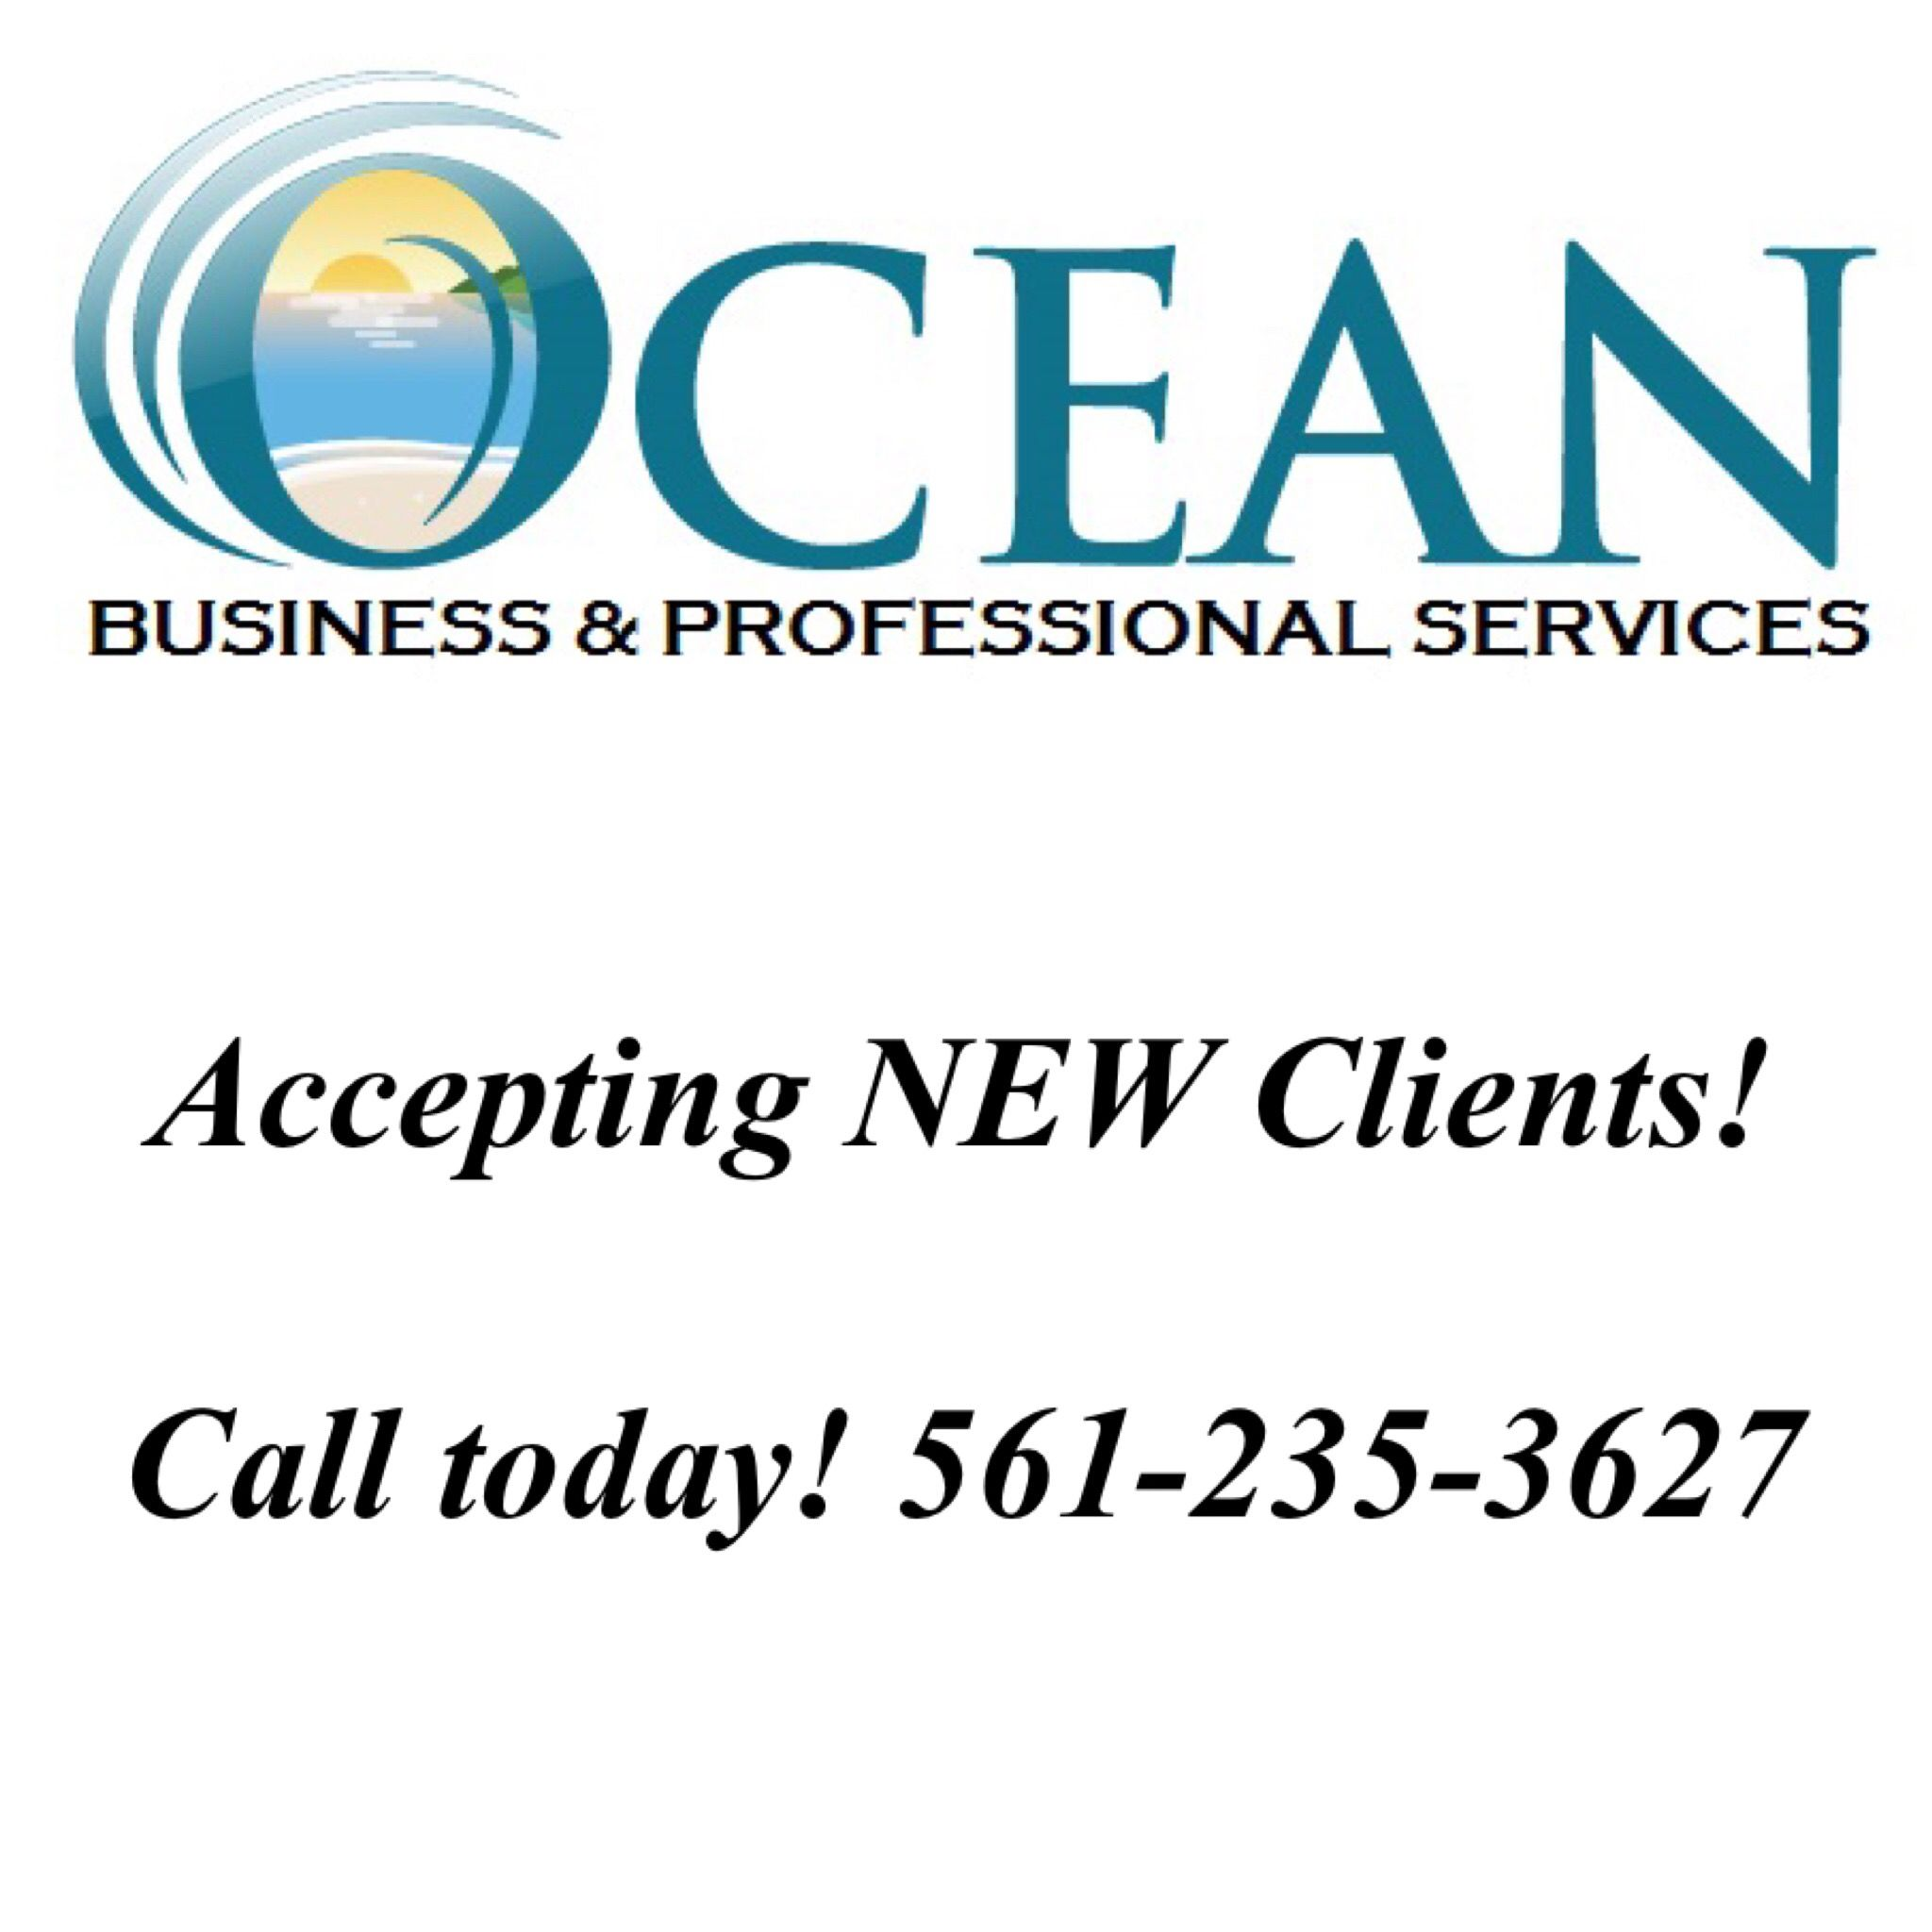 OceanBPS can assist you in many areas of your business such as ...